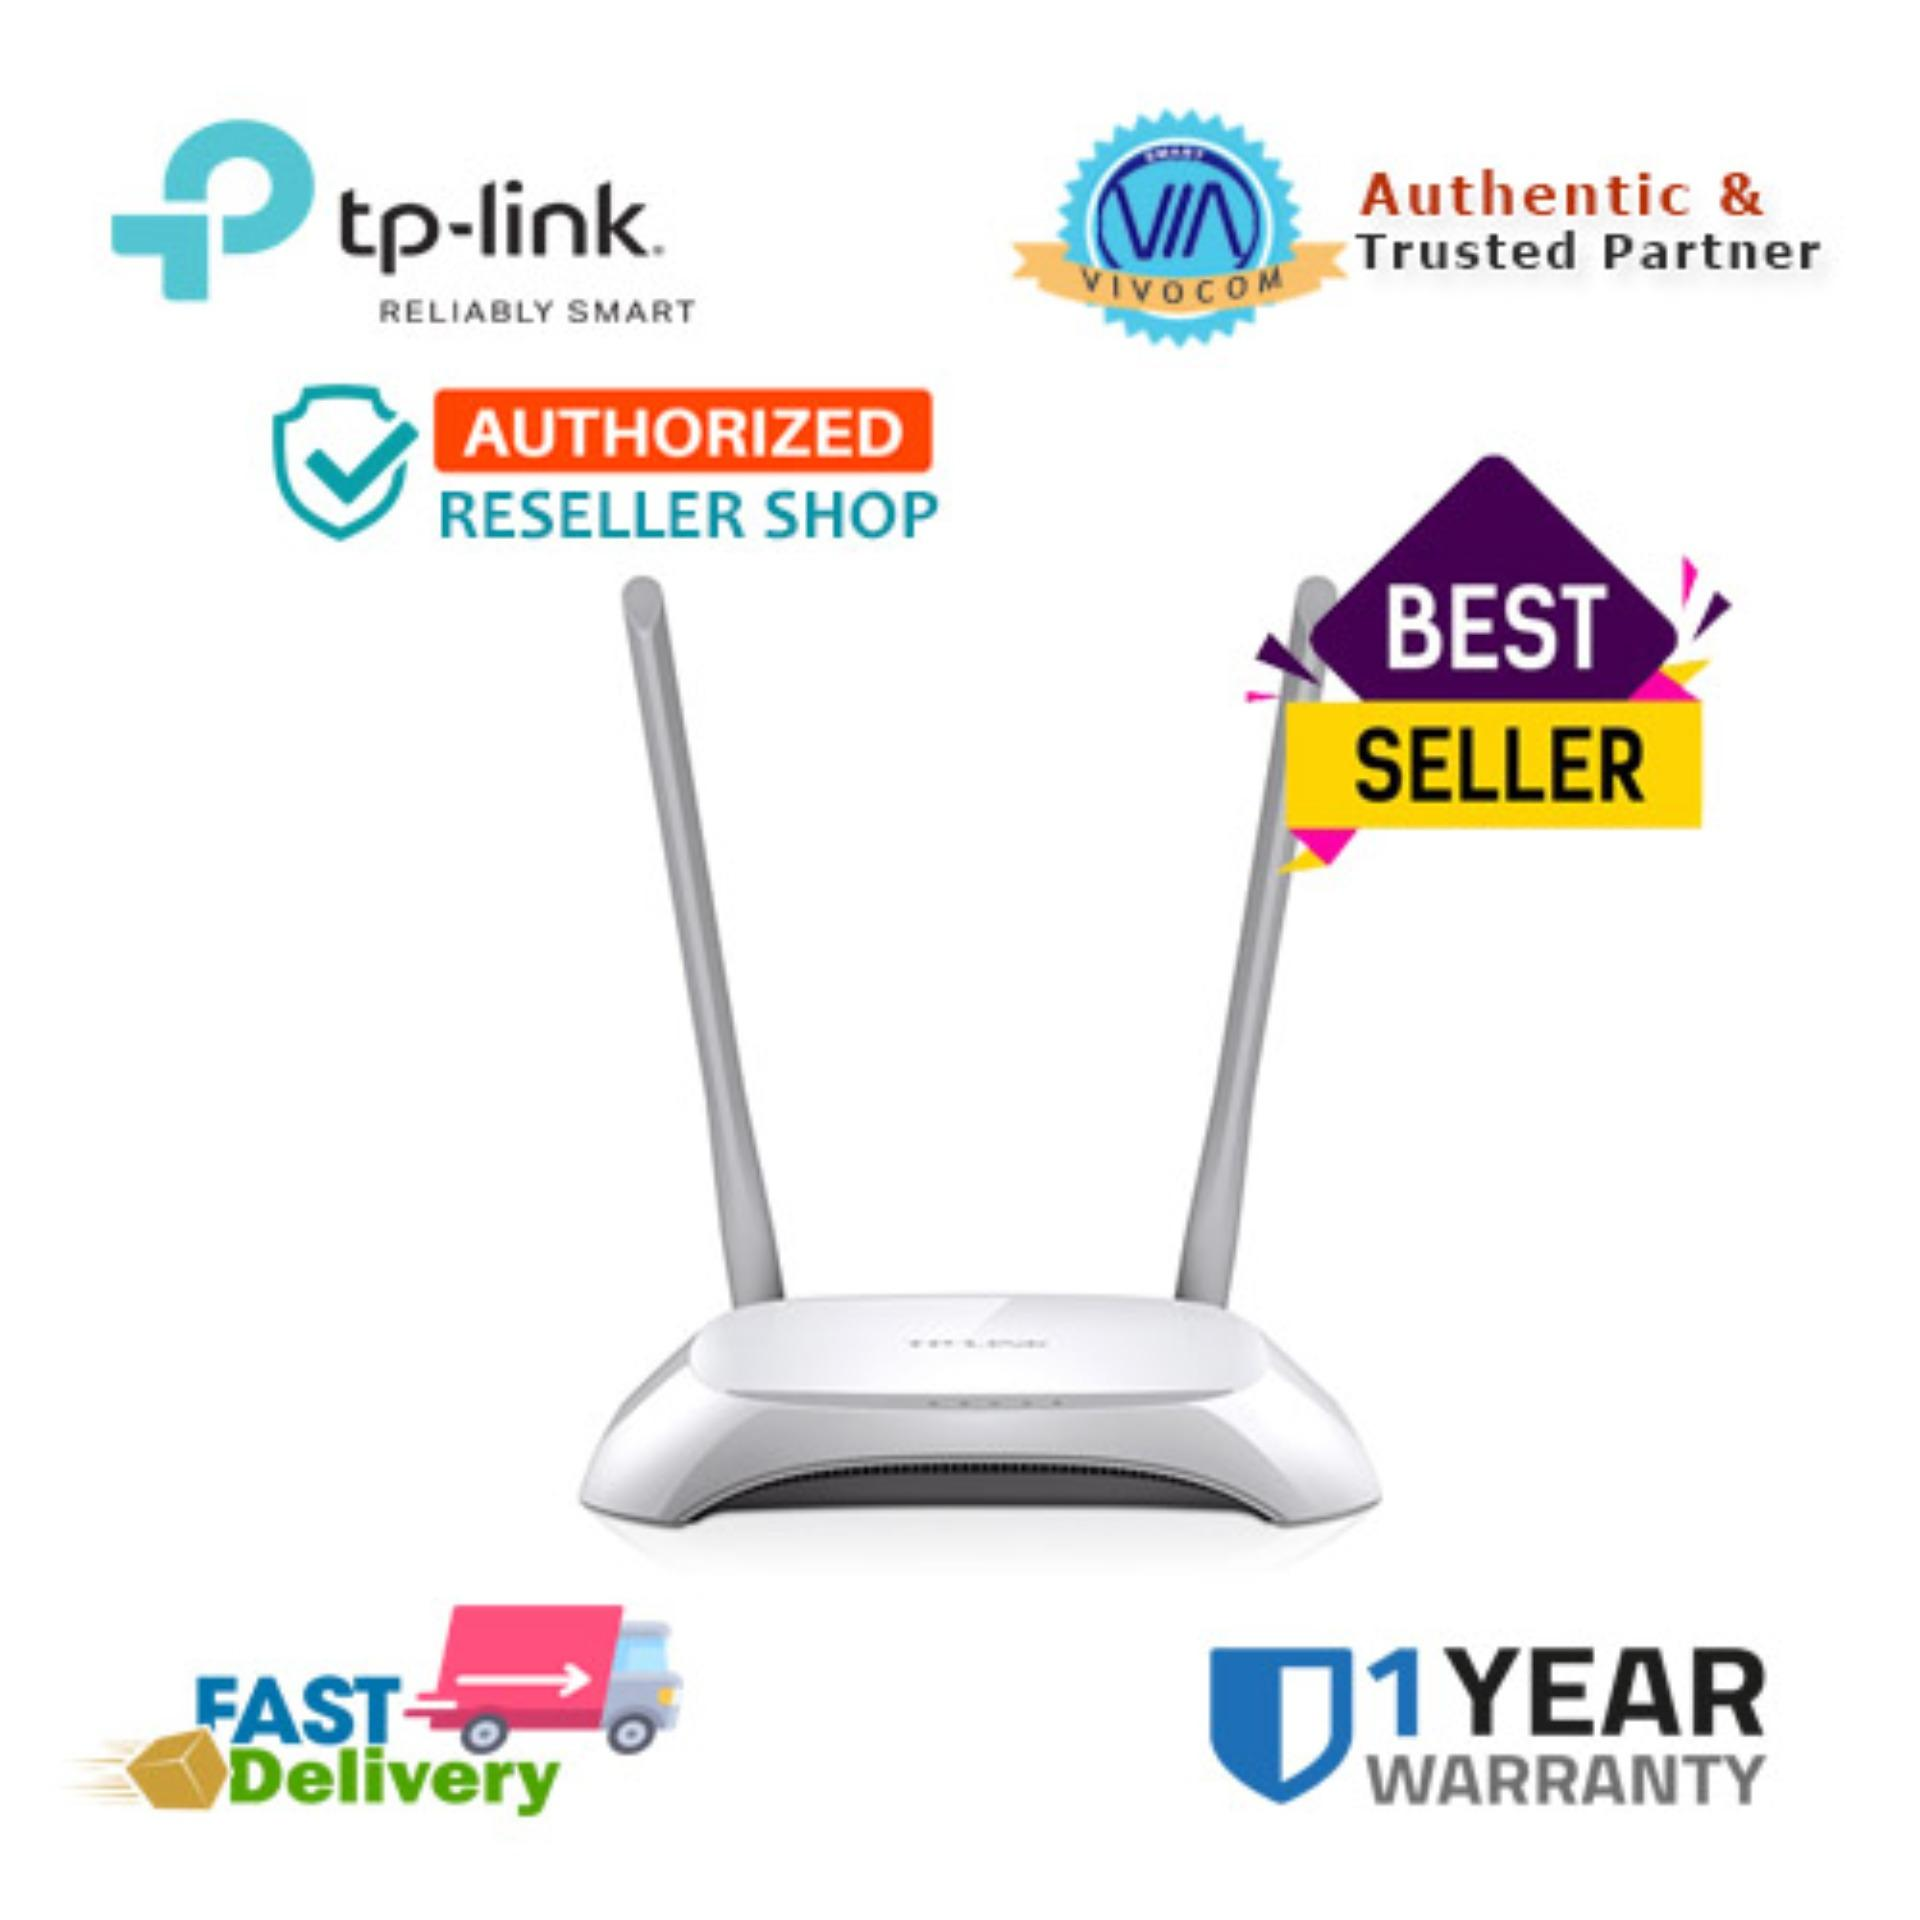 TP Link Philippines -TP Link Routers for sale - prices & reviews